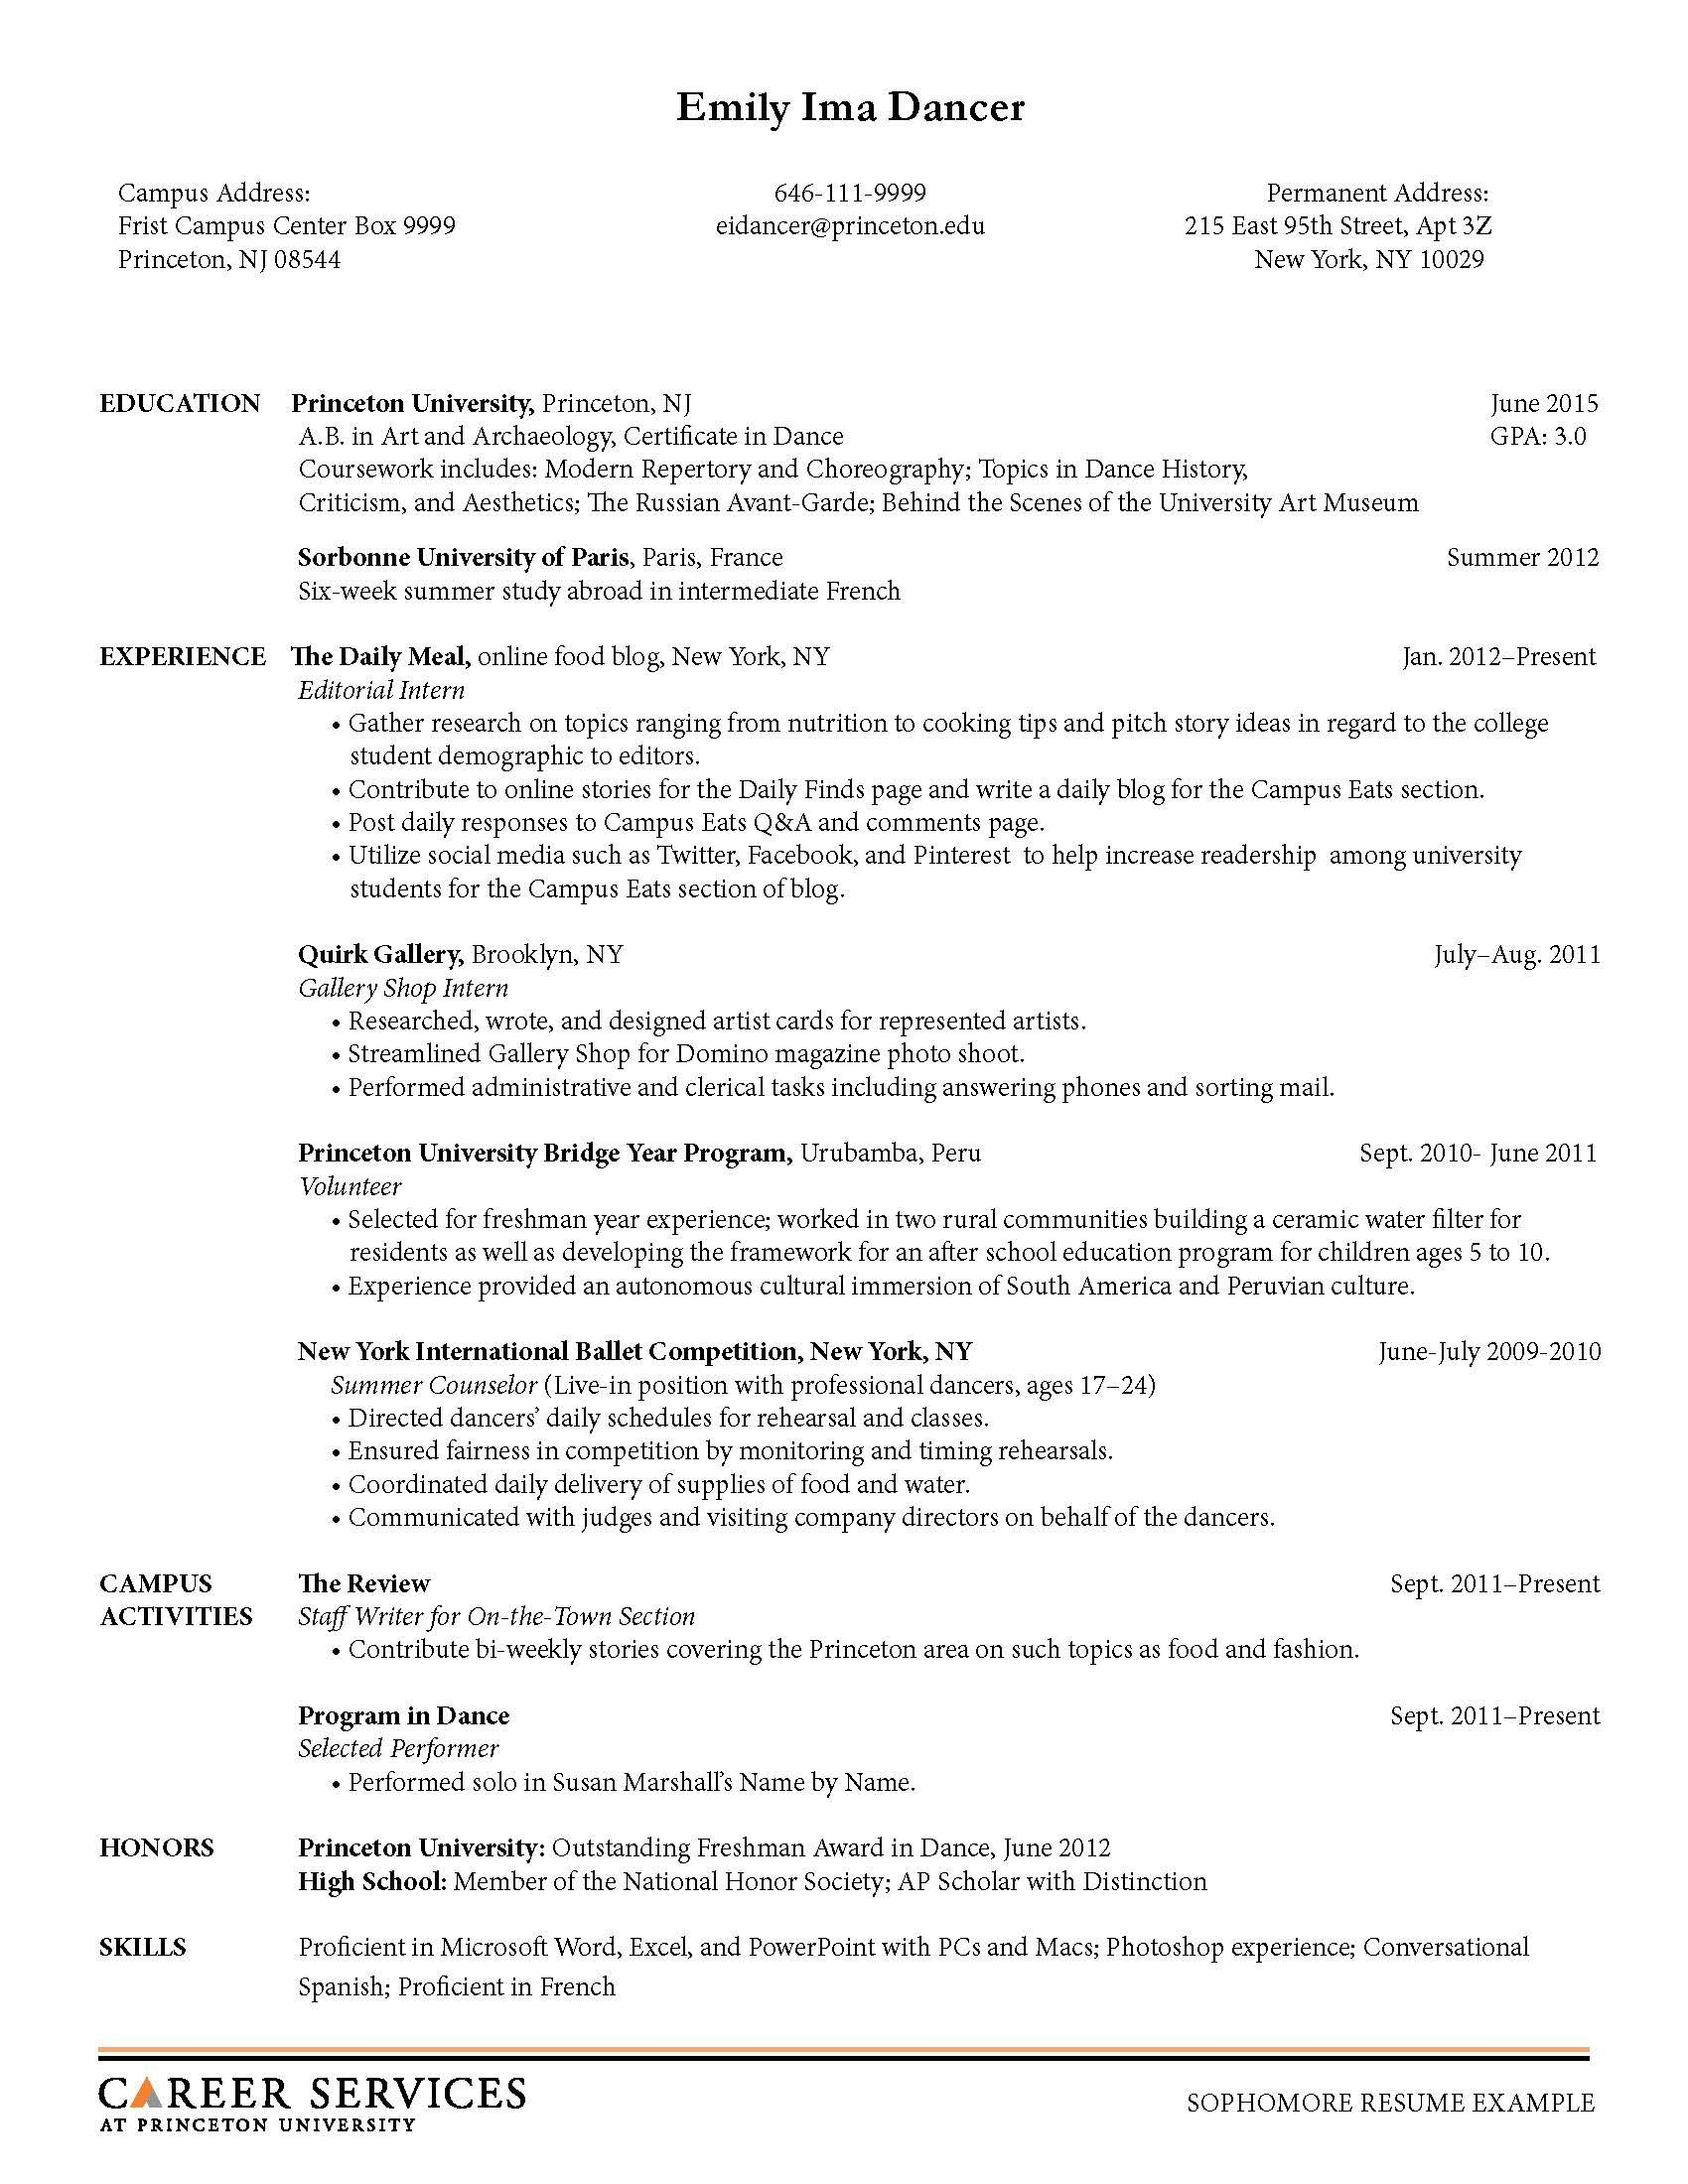 Picnictoimpeachus  Gorgeous Sample Resume Resume And Career On Pinterest With Entrancing Best Free Resume Builder Besides Education Resume Furthermore Build A Resume Free With Adorable References For Resume Also Resume Online In Addition Manager Resume And Resume Creator Free As Well As Data Analyst Resume Additionally Hair Stylist Resume From Pinterestcom With Picnictoimpeachus  Entrancing Sample Resume Resume And Career On Pinterest With Adorable Best Free Resume Builder Besides Education Resume Furthermore Build A Resume Free And Gorgeous References For Resume Also Resume Online In Addition Manager Resume From Pinterestcom